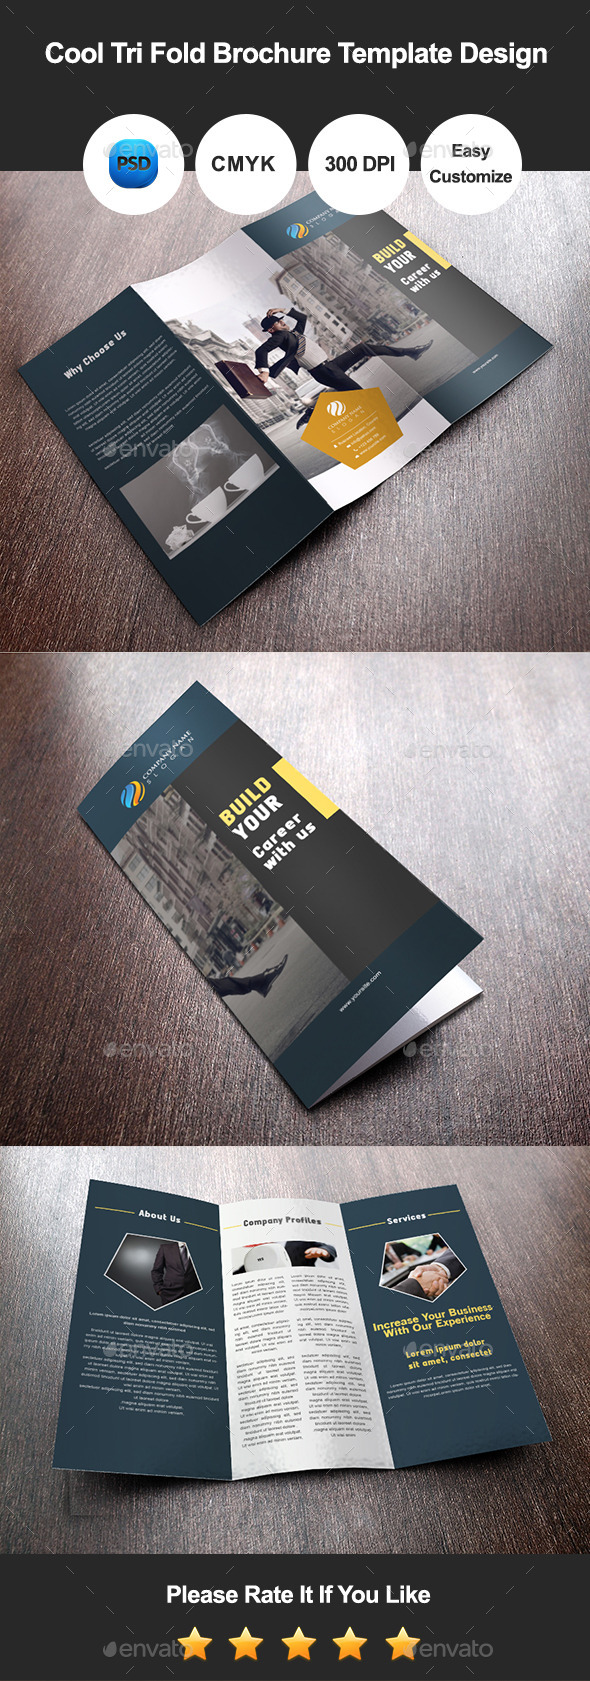 Cool Tri Fold Brochure Template Design - Corporate Brochures